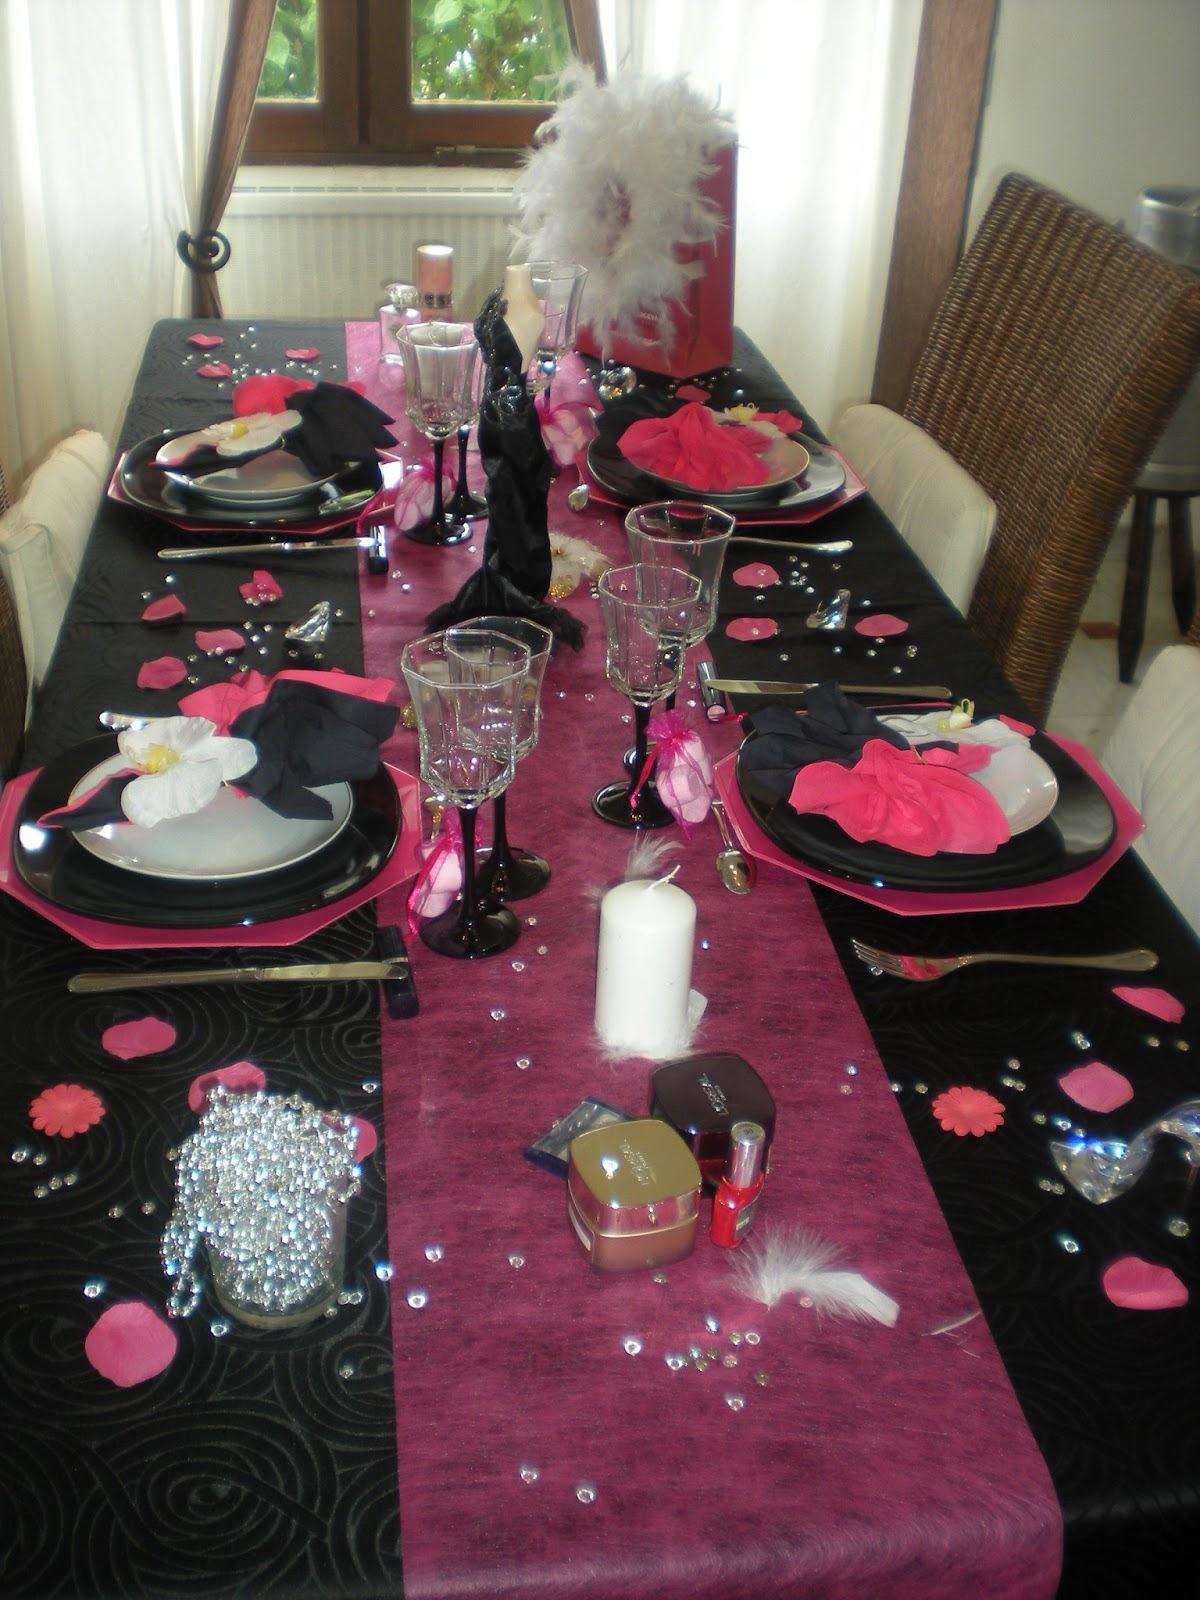 D co de table girly en noir et rose fushia d co de for Deco table rose et noir